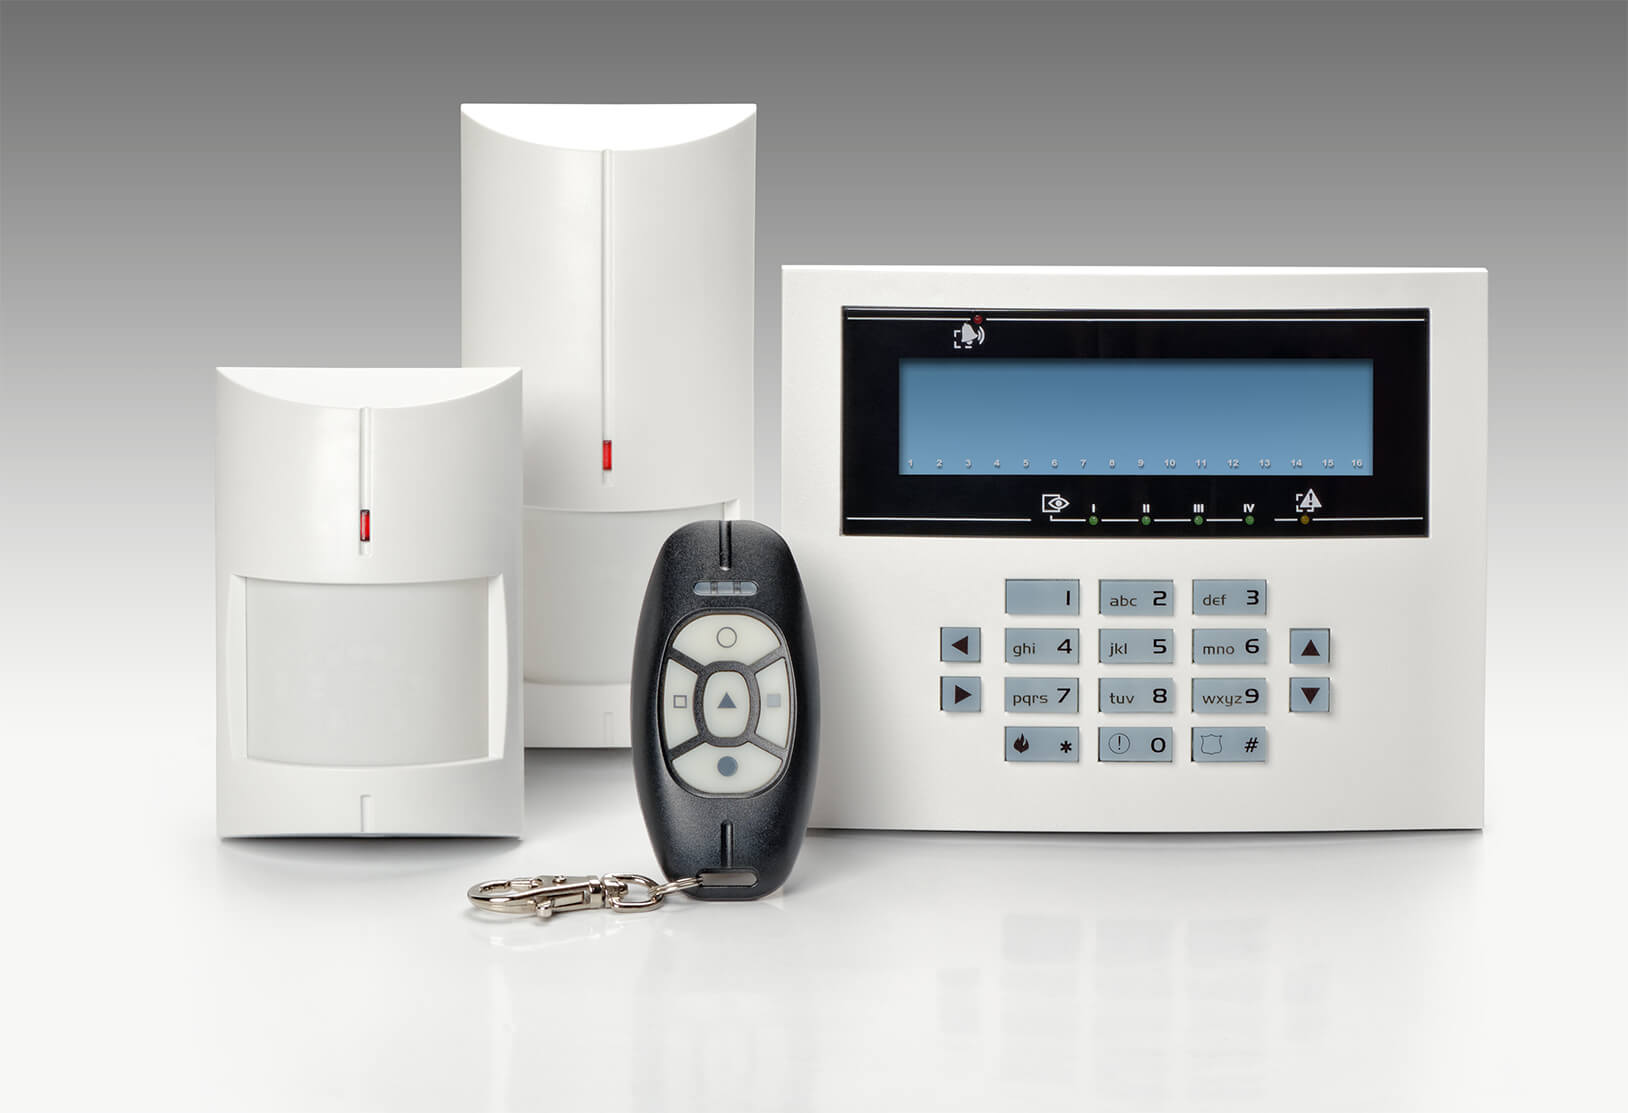 Business & Residential NACOSS Approved Burglar Alarms In Aldgate EC3 - Local Aldgate EC3 security company.Call 02078872244 - Dedicated to Safety & Security. Companies, shops and homes ..